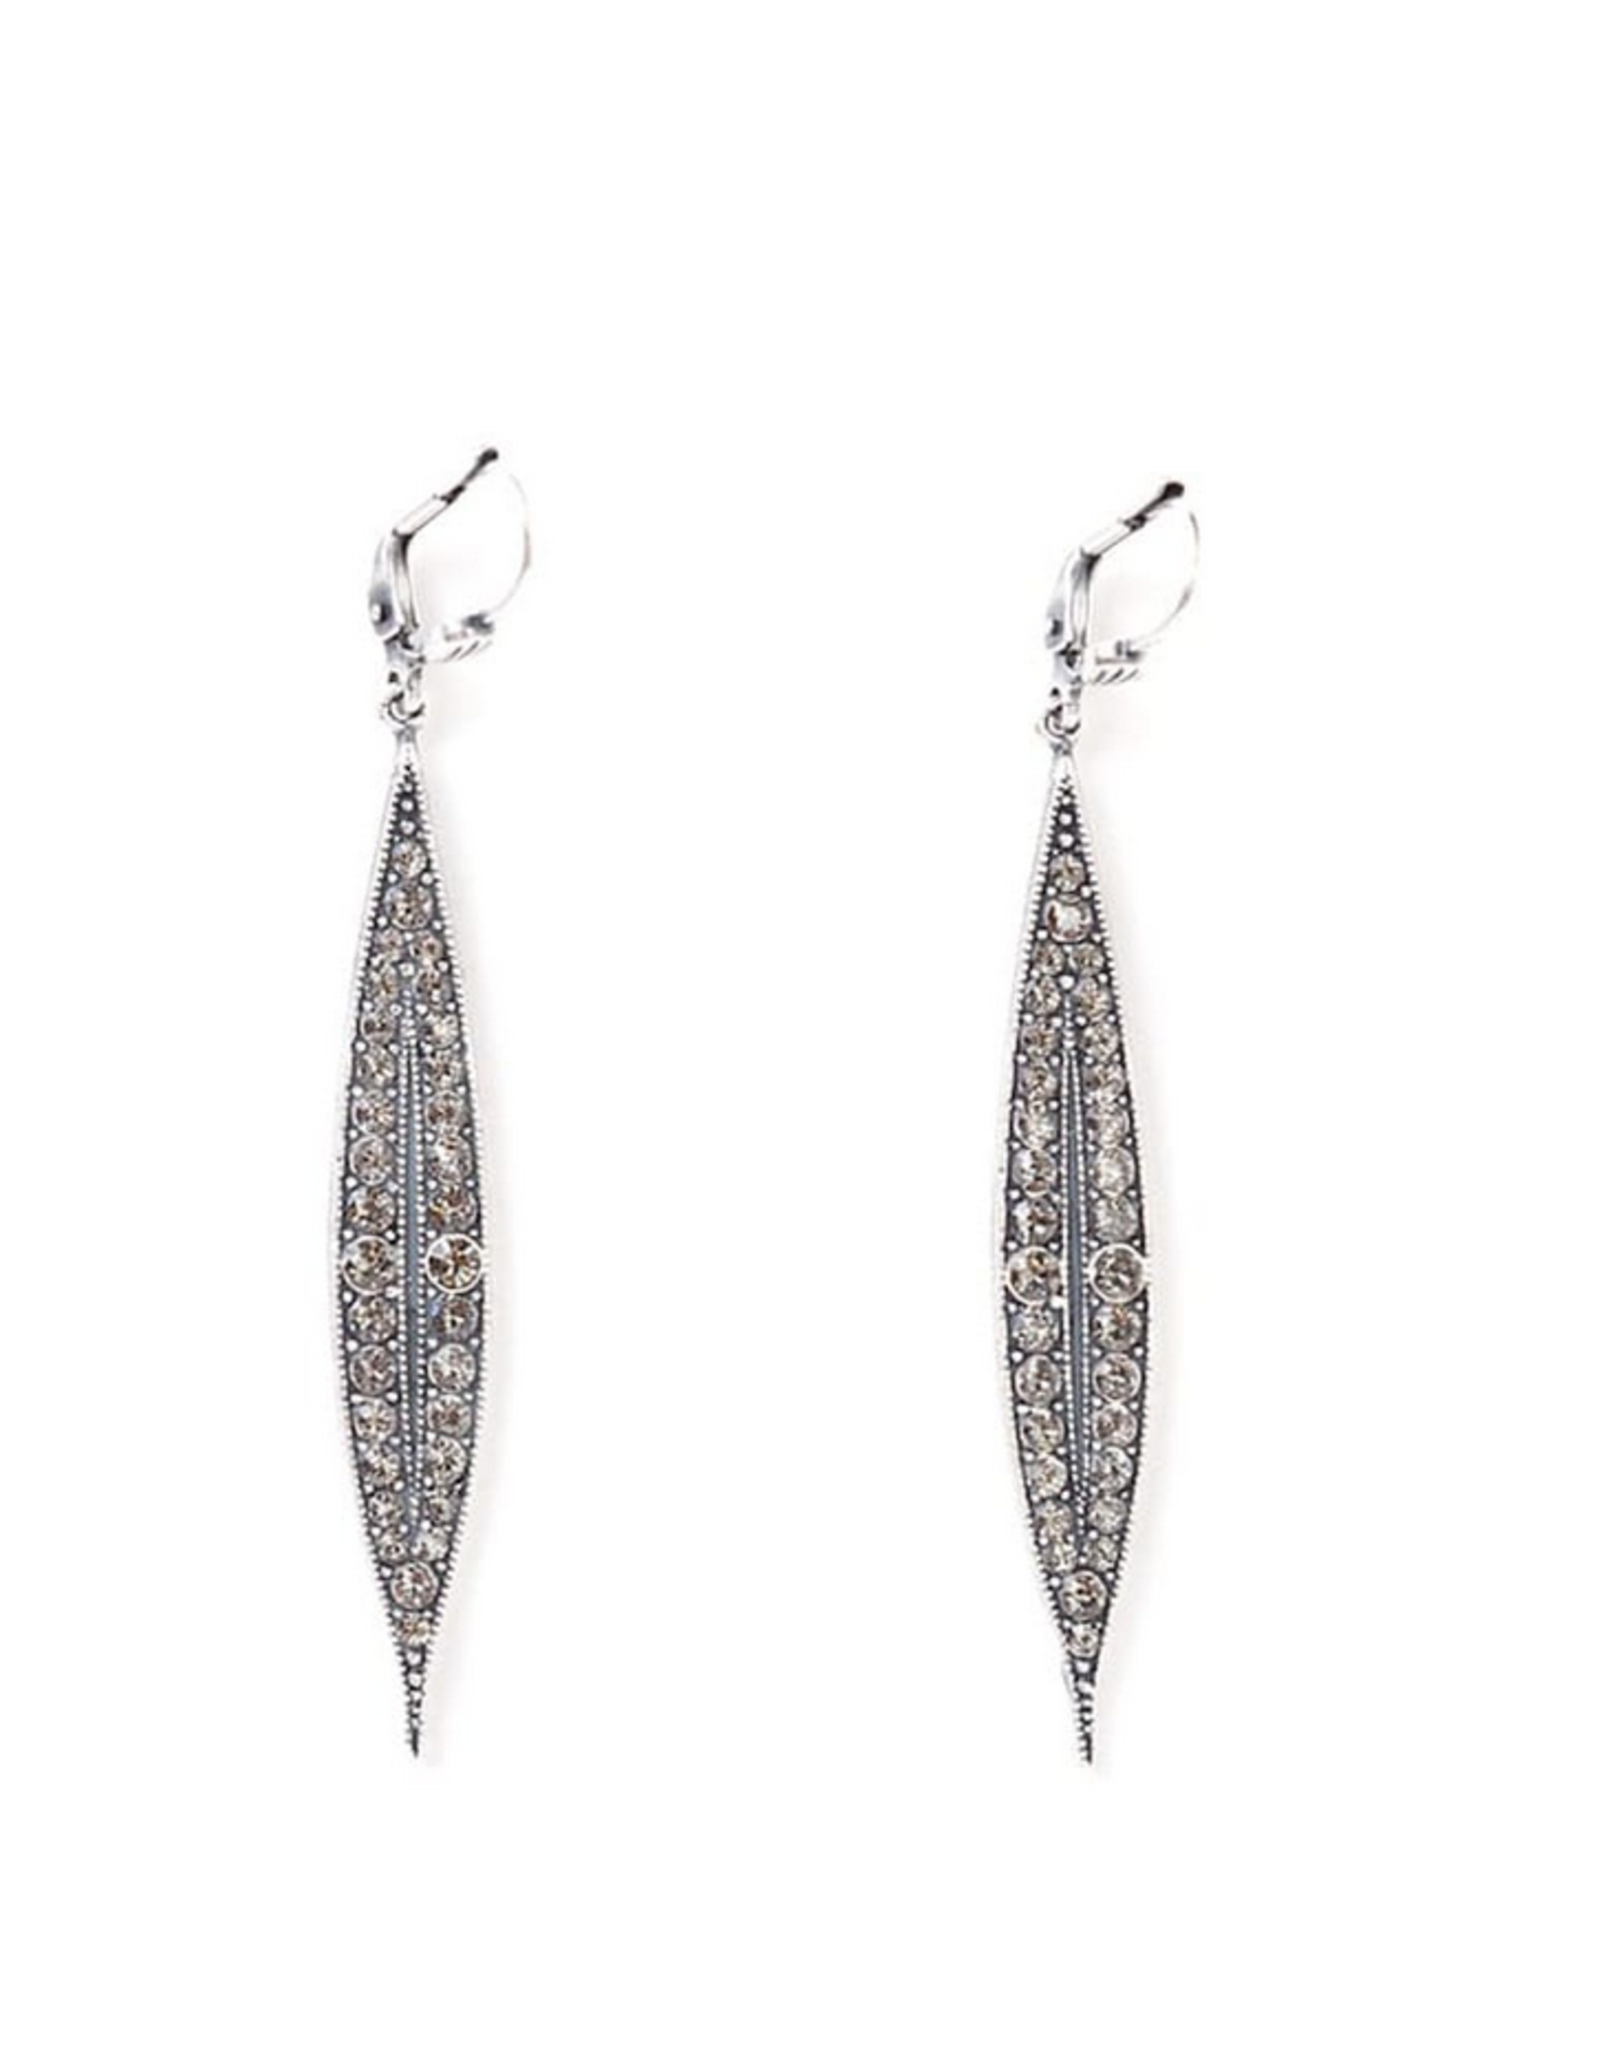 EARRING LONG SPEAR WITH RHINESTONES 2 INCHES SILVER